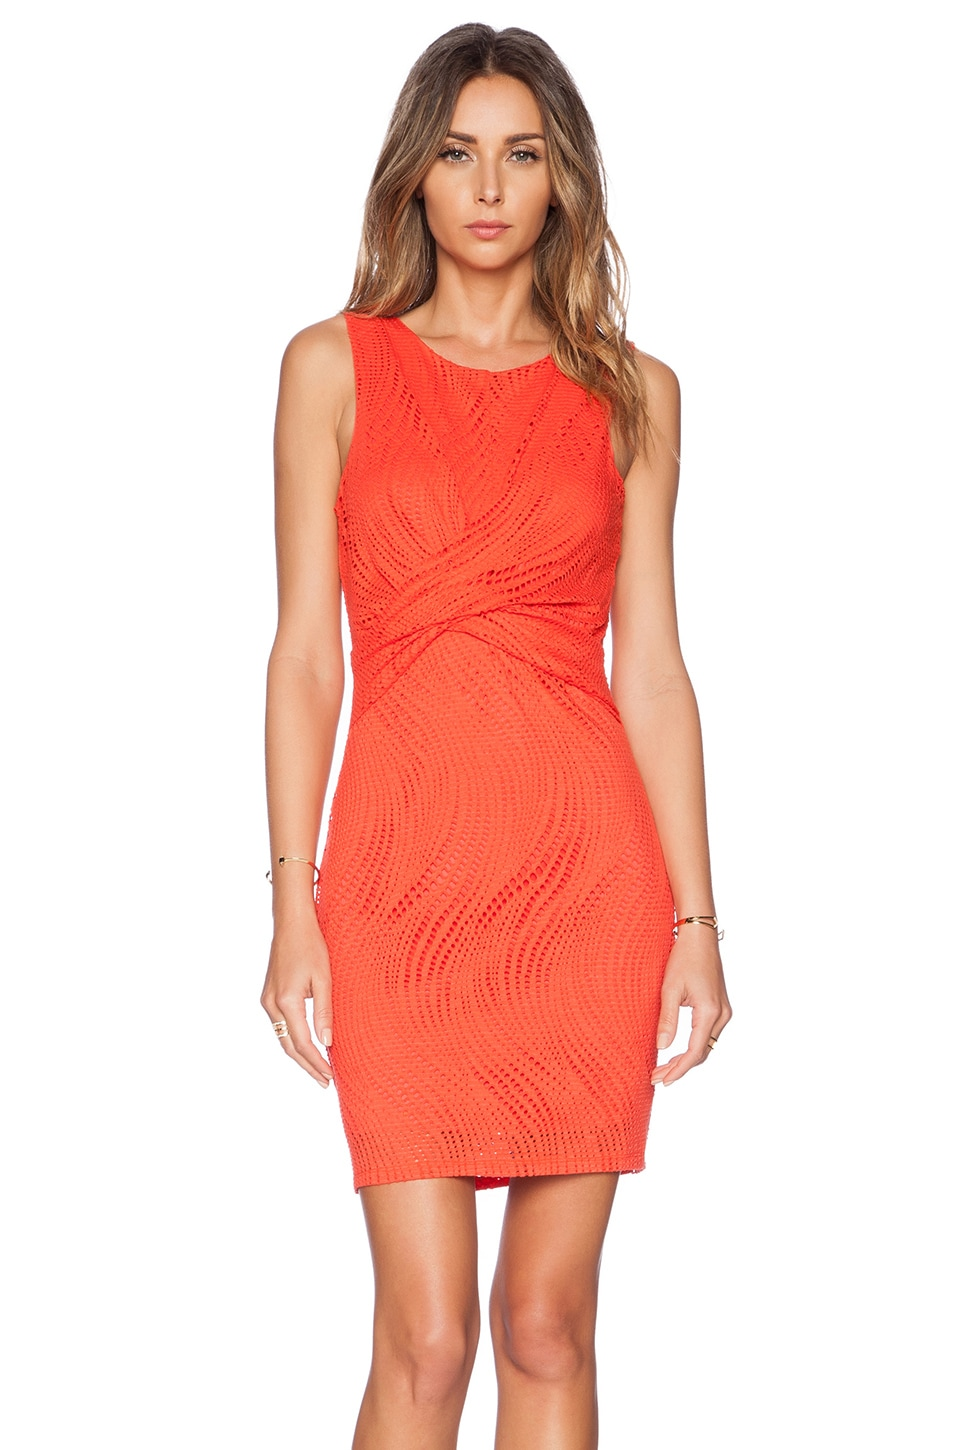 Lumier Cut It Out Mini Dress in Red